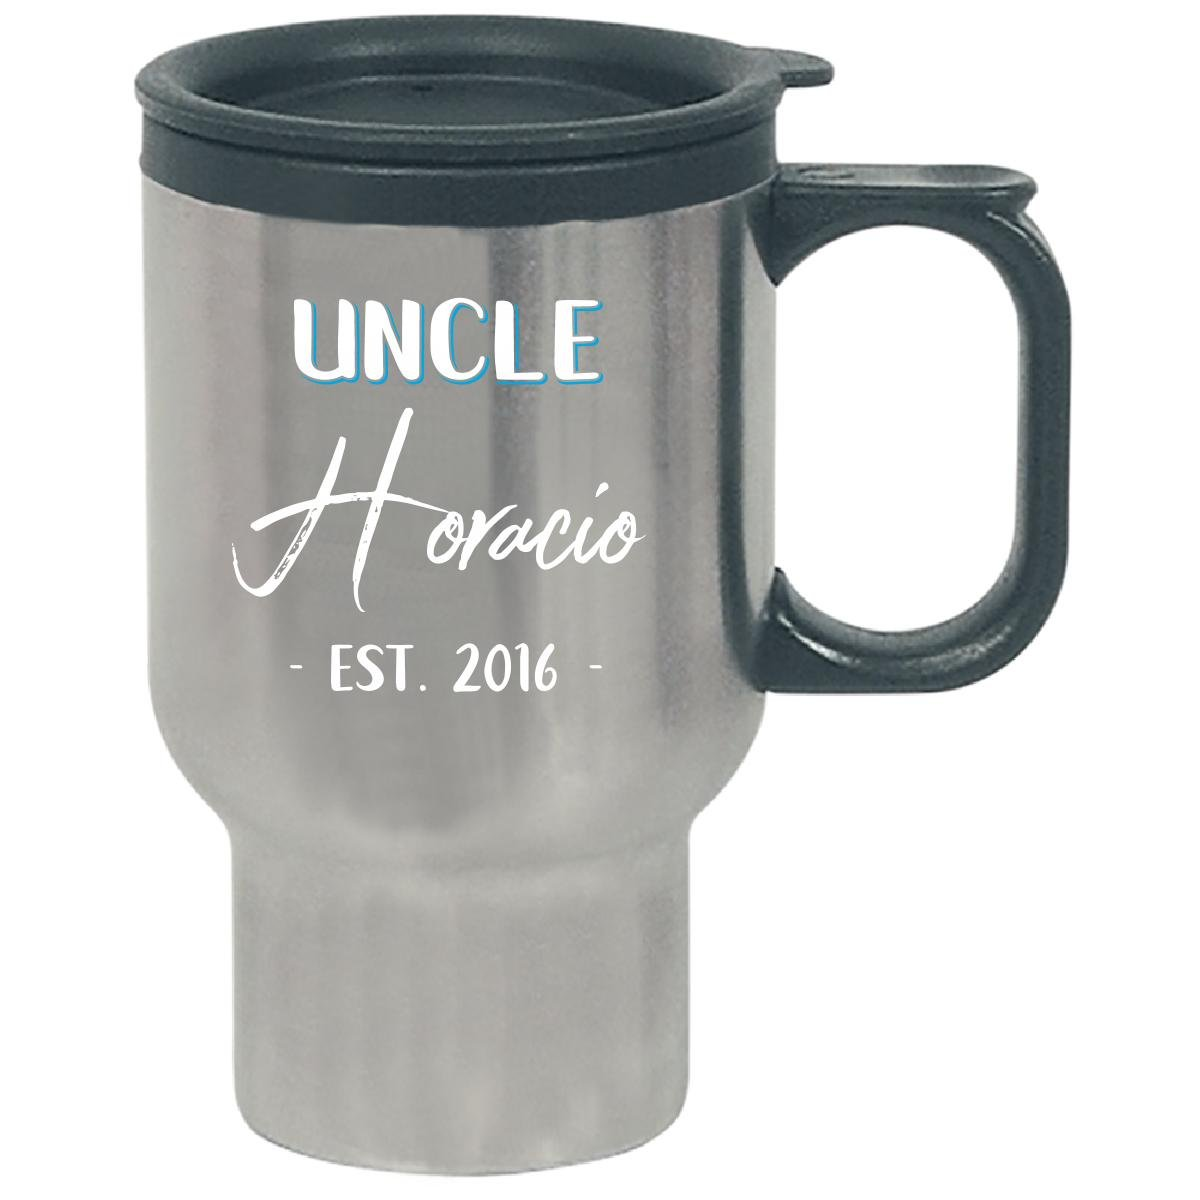 Uncle Horacio Est. 2016 New Baby Gift Announcement - Travel Mug by My Family Tee (Image #1)